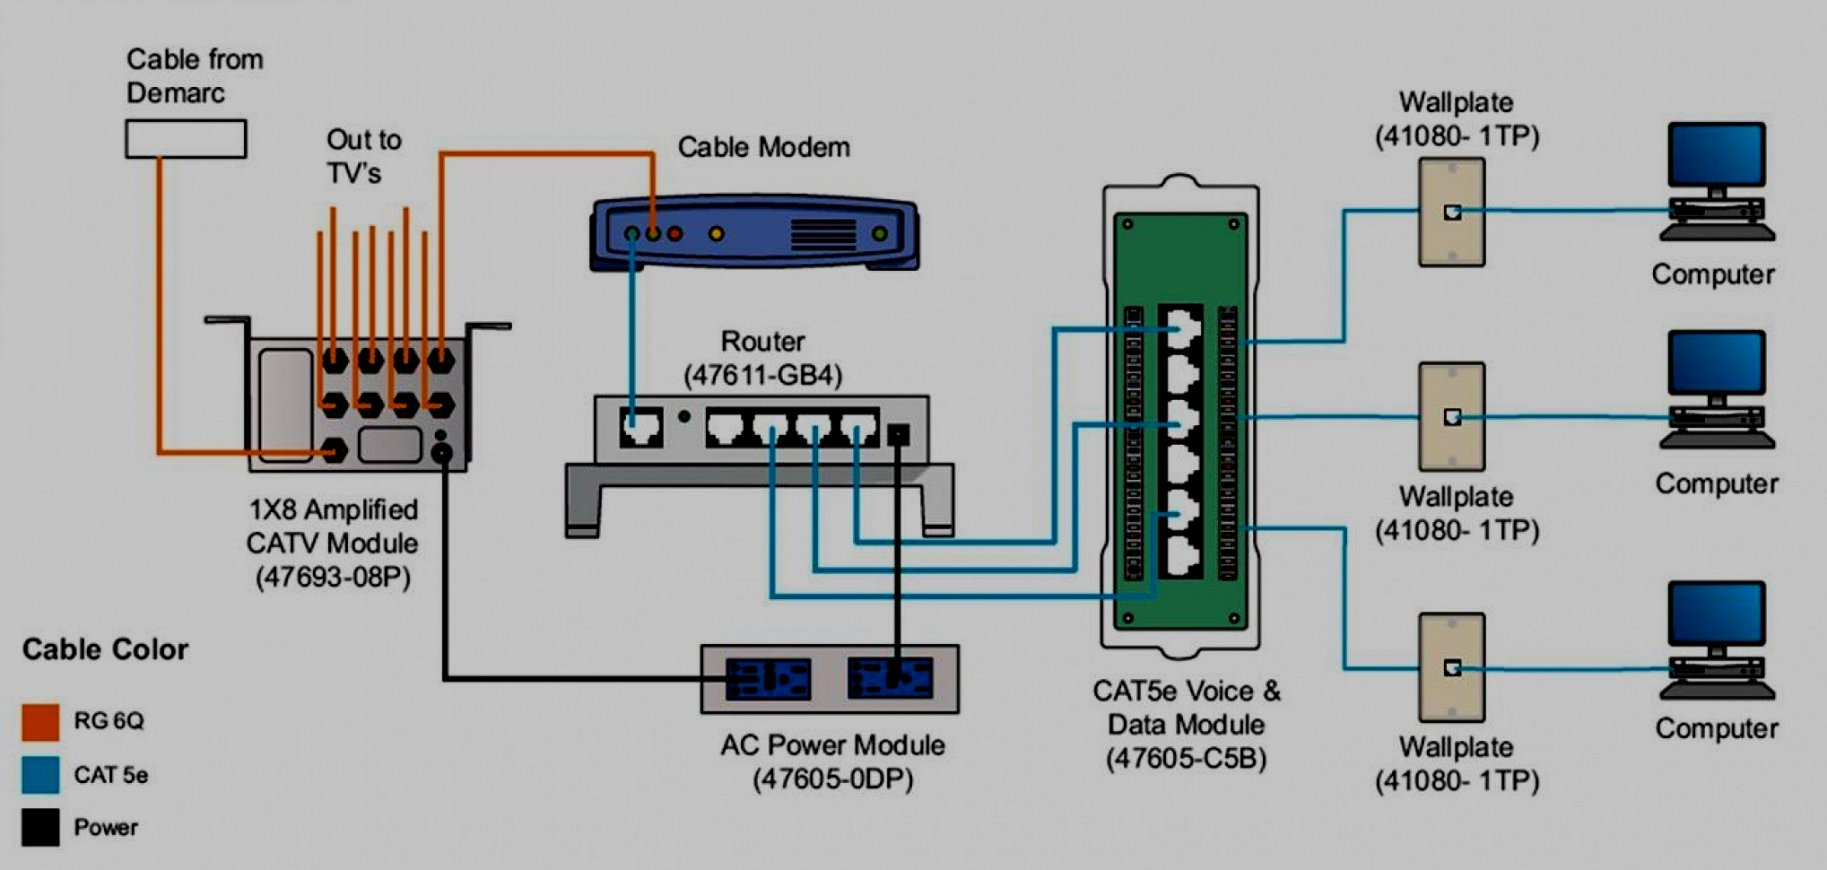 Cat5 Wiring Home | Wiring Diagram - Cat5 Phone Line Wiring Diagram